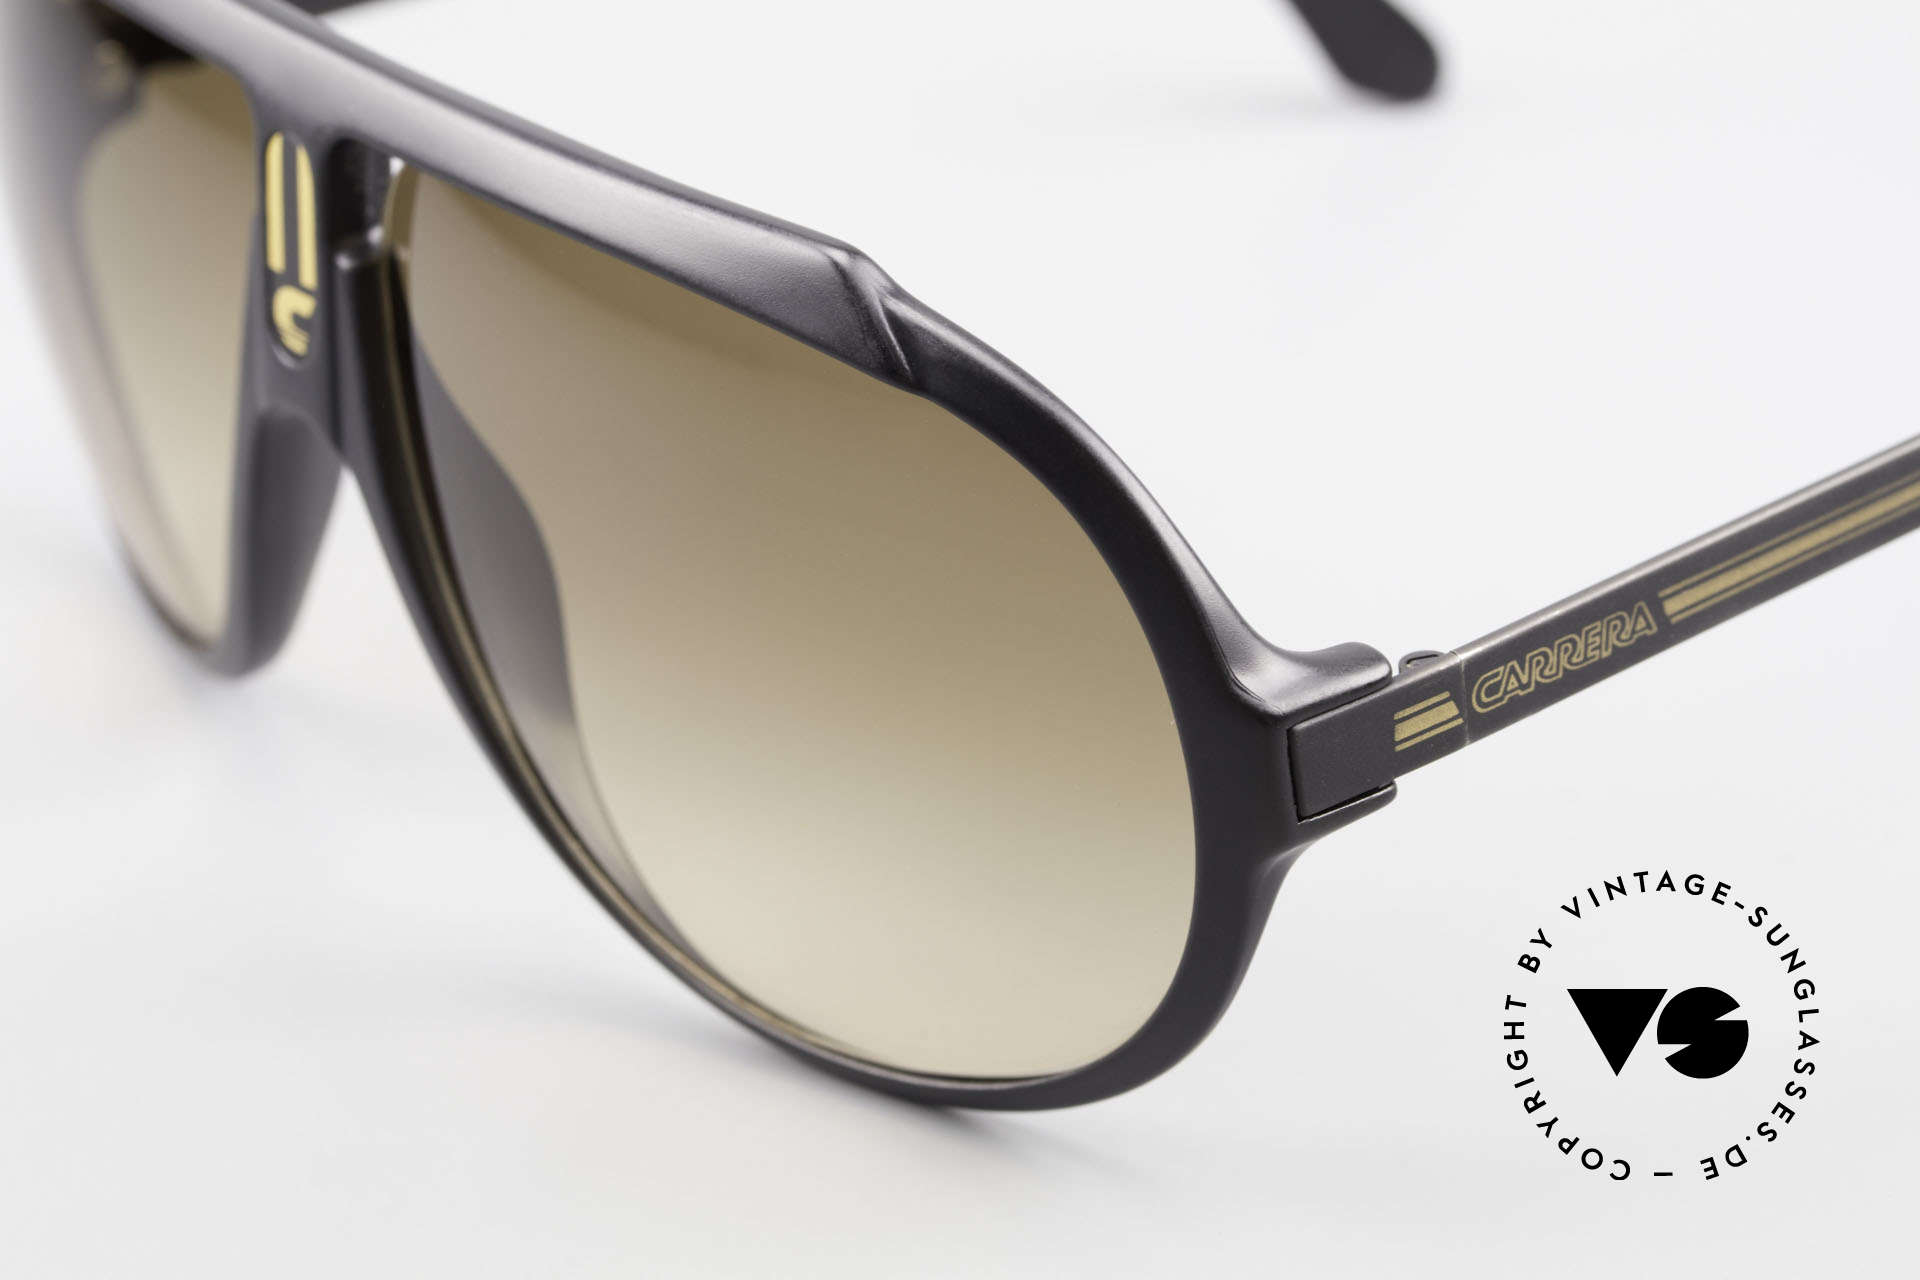 Carrera 5512 Most Wanted Carrera 5512, cult object and sought-after collector's item, worldwide, Made for Men